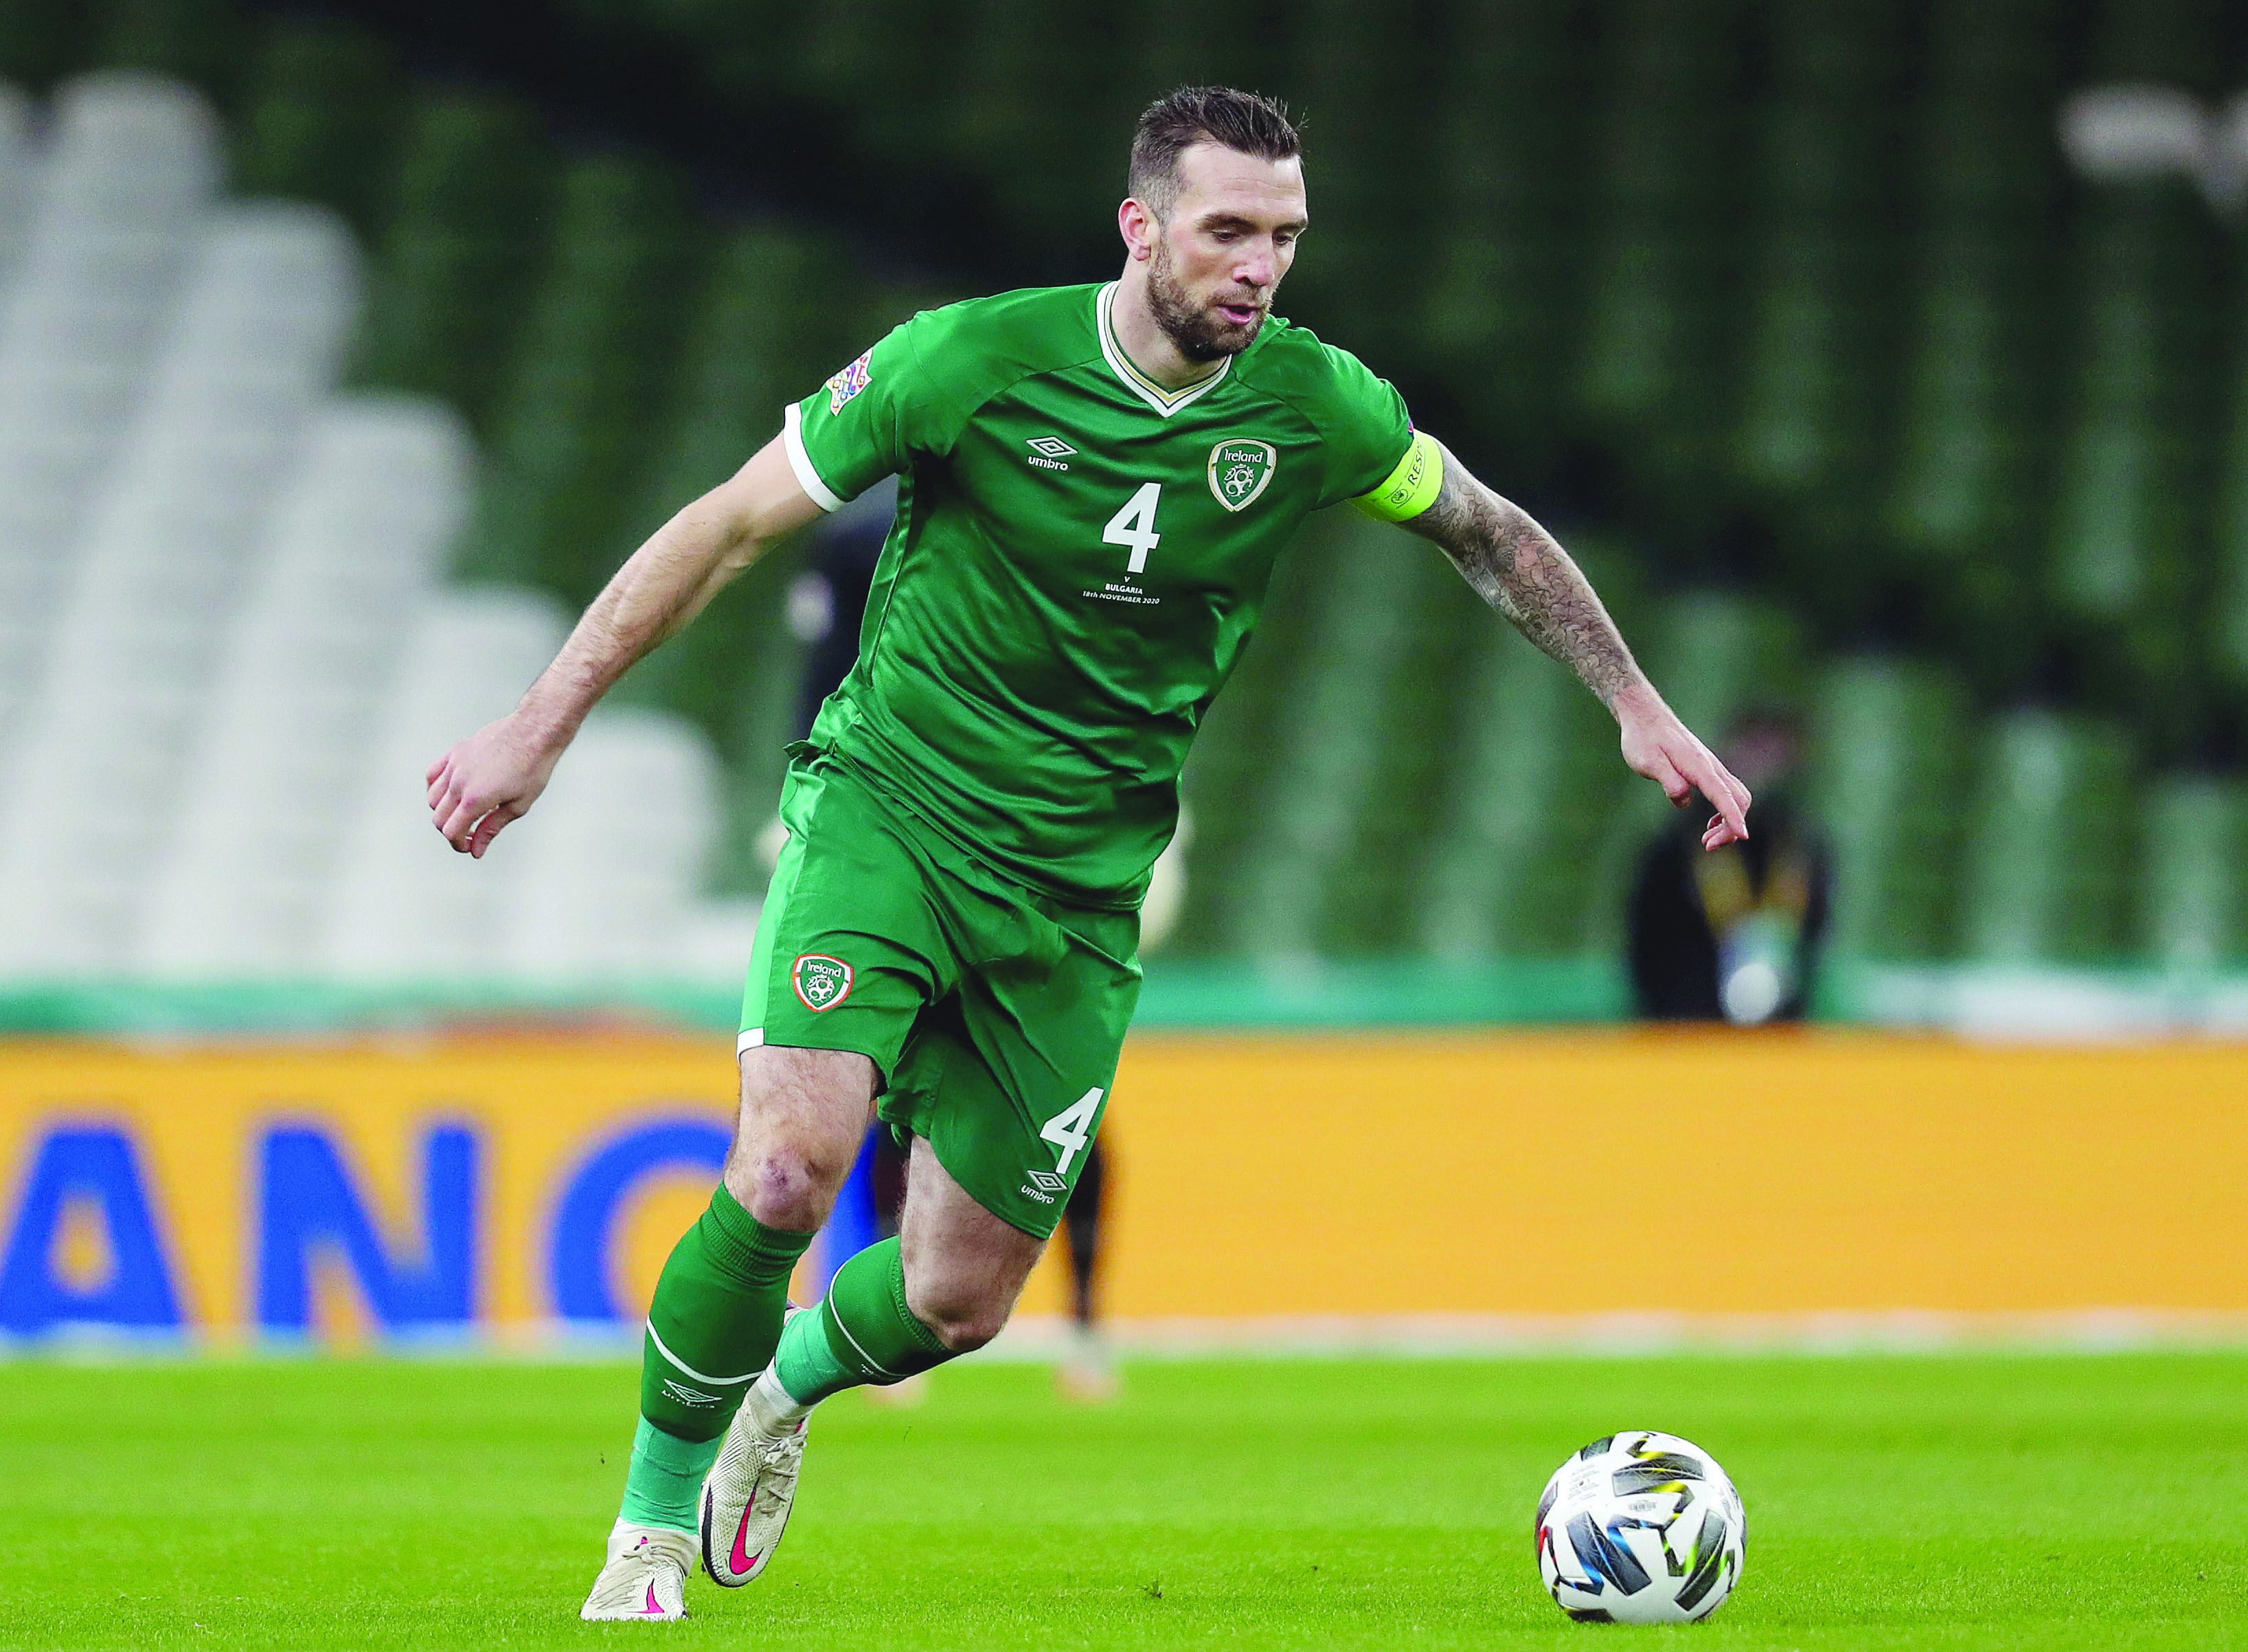 Shane Duffy capped a good performance with a goal against Kilmarnock on Sunday that ought to help the big Derry man's confidence